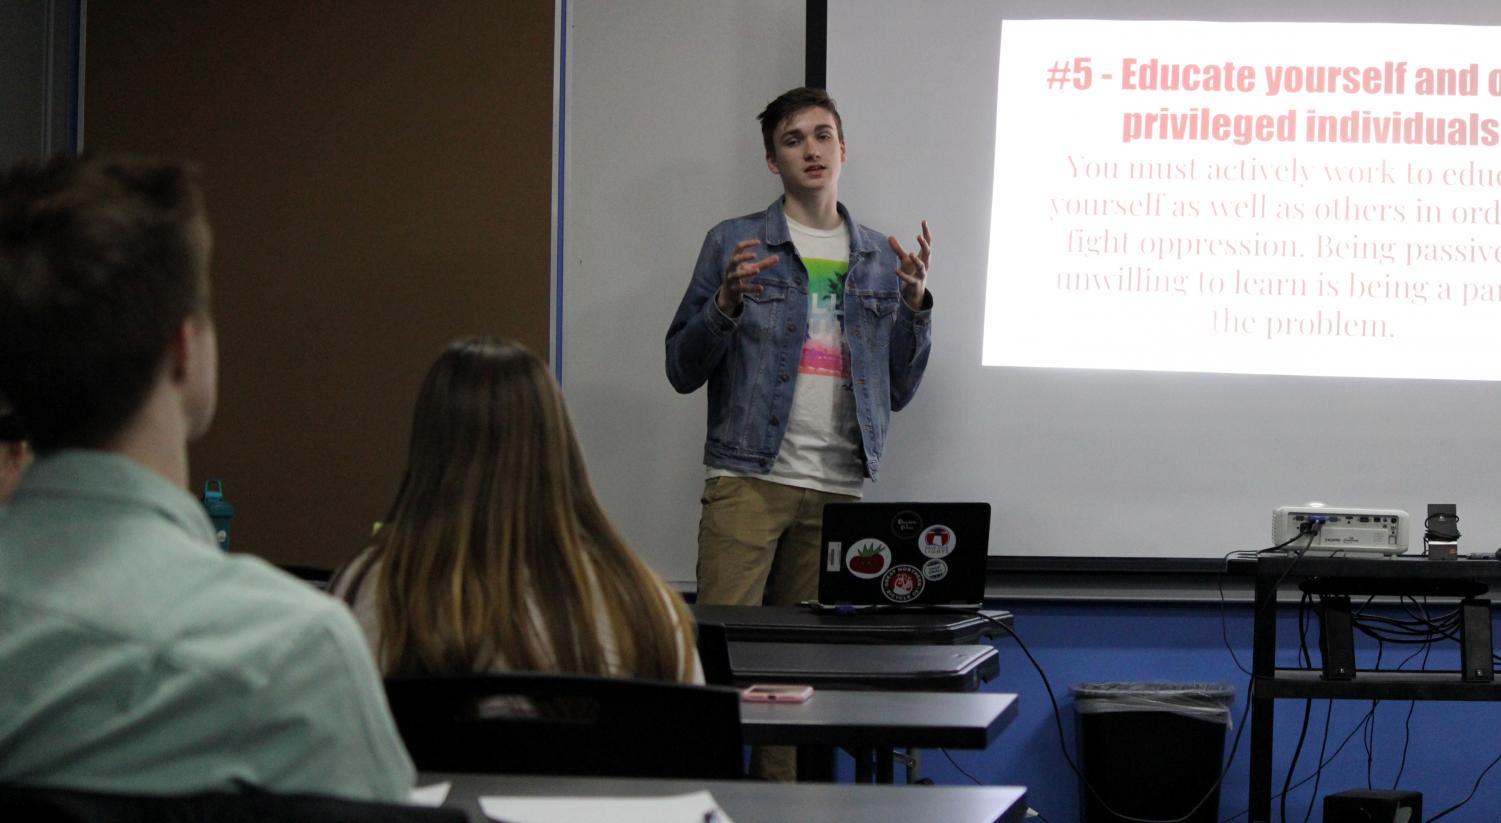 Thomas Chicka presents to a group of students and teachers on March 6 in the library conference room, informing them about privilege and how to become a better ally to the GLBTQ community.